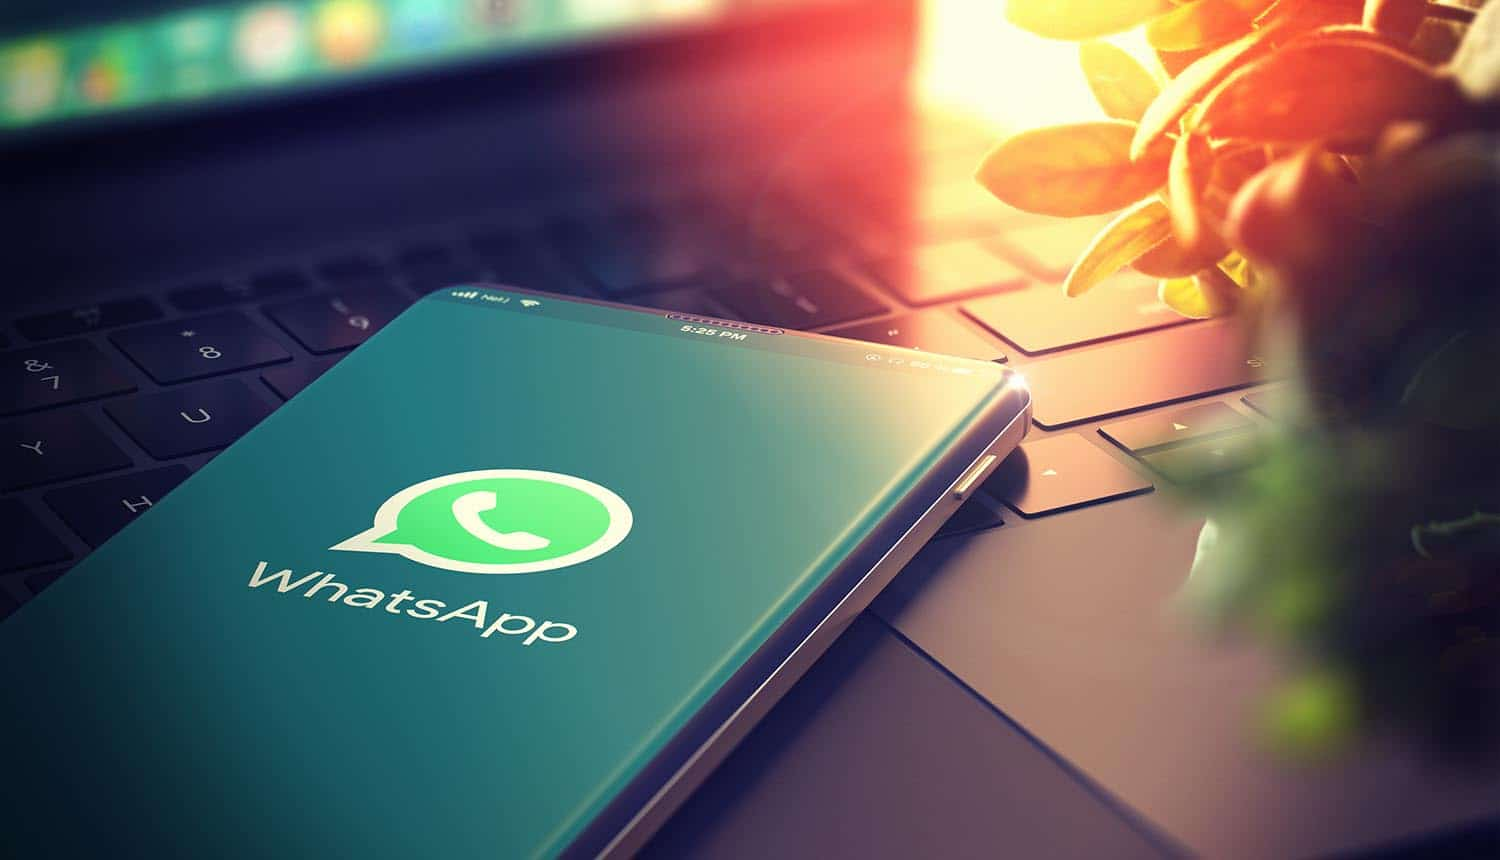 WhatsApp Phone Numbers From Private Profiles Leaked to the Public via Google Search - CPO Magazine